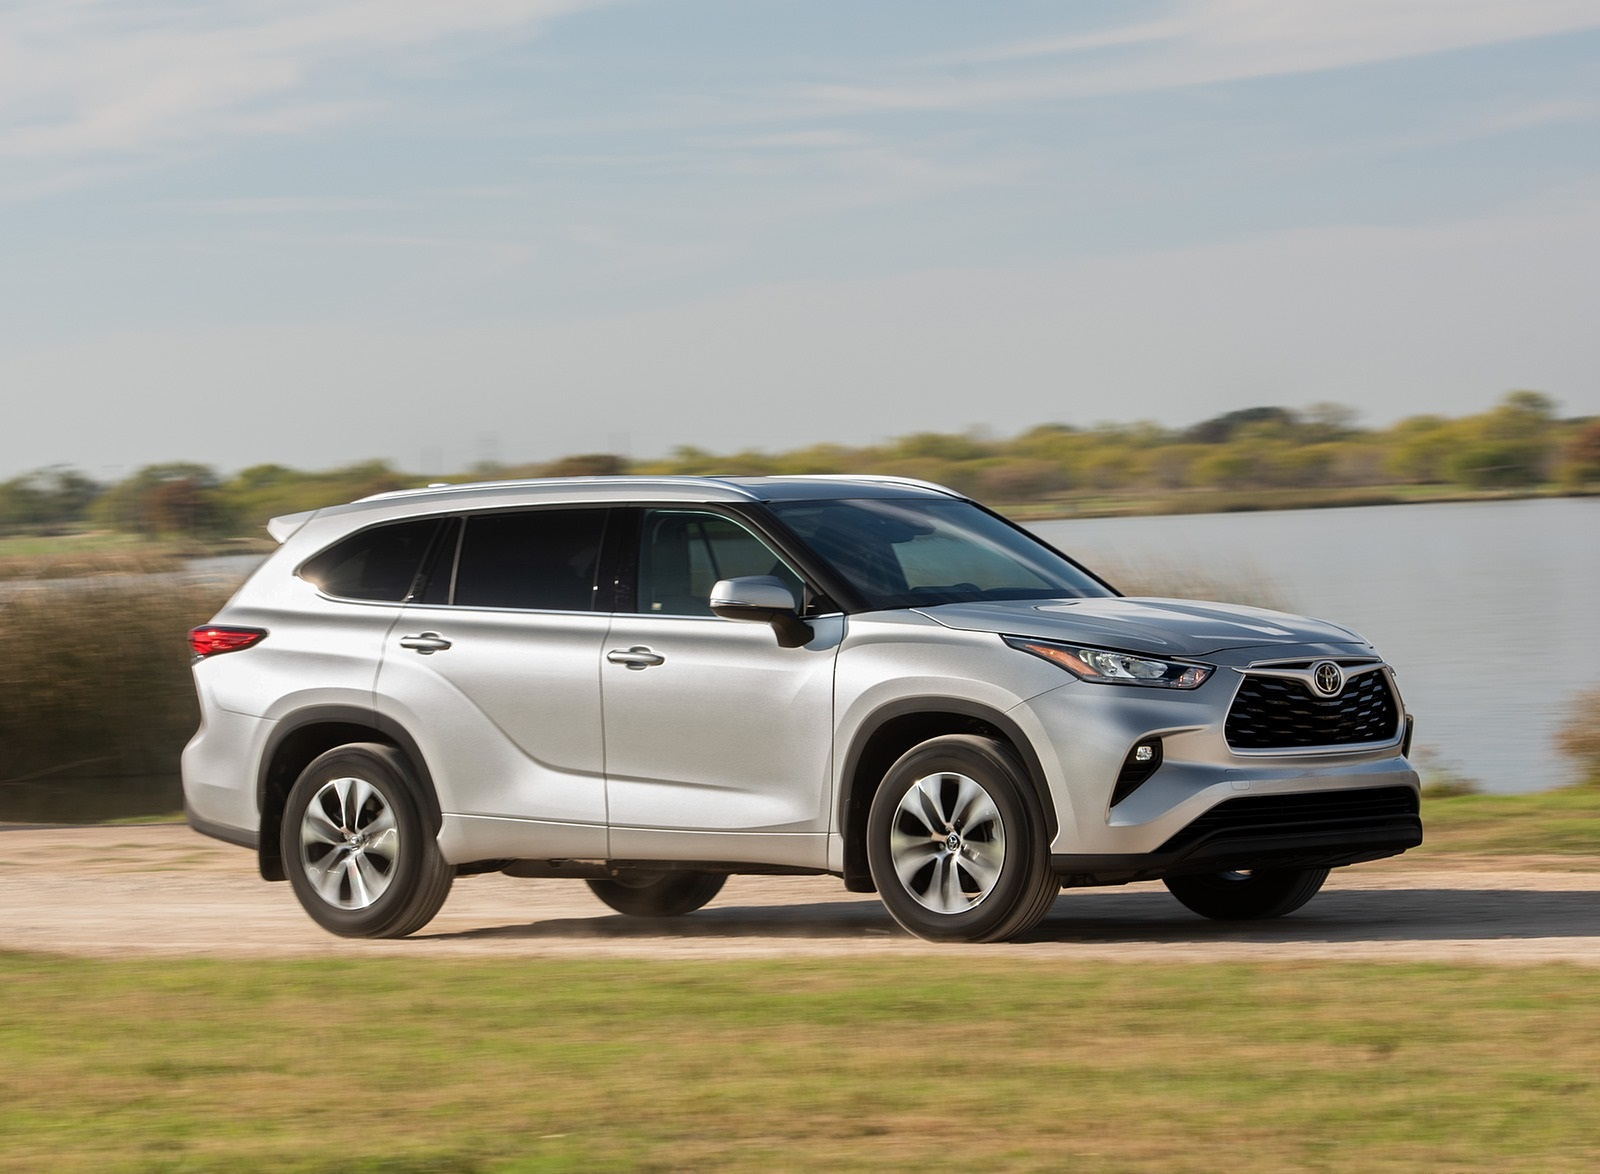 2020 Toyota Highlander XLE (Color: Silver Metallic) Front Three-Quarter Wallpapers (4)